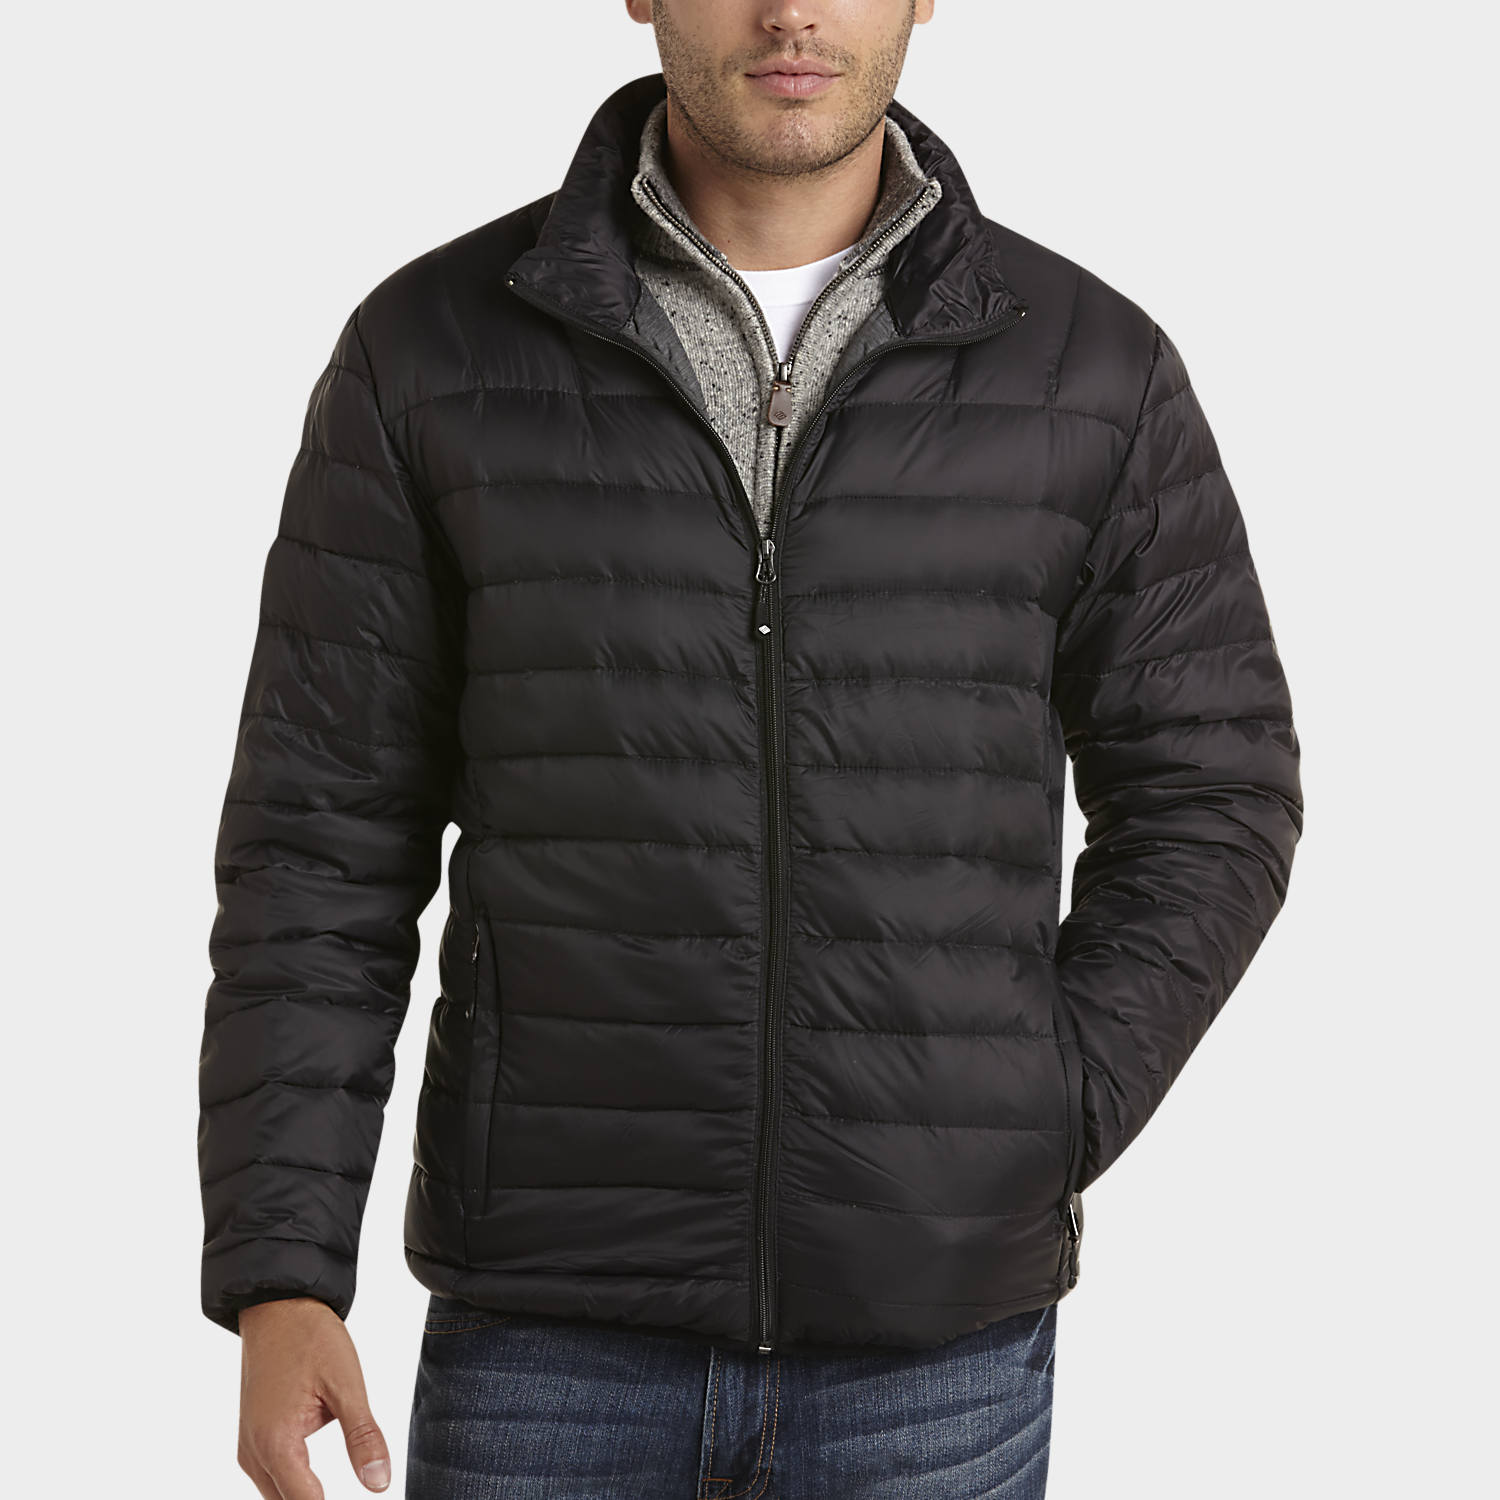 Joseph Abboud Black Classic Fit Down-Filled Jacket - Casual Jackets | Men's Wearhouse